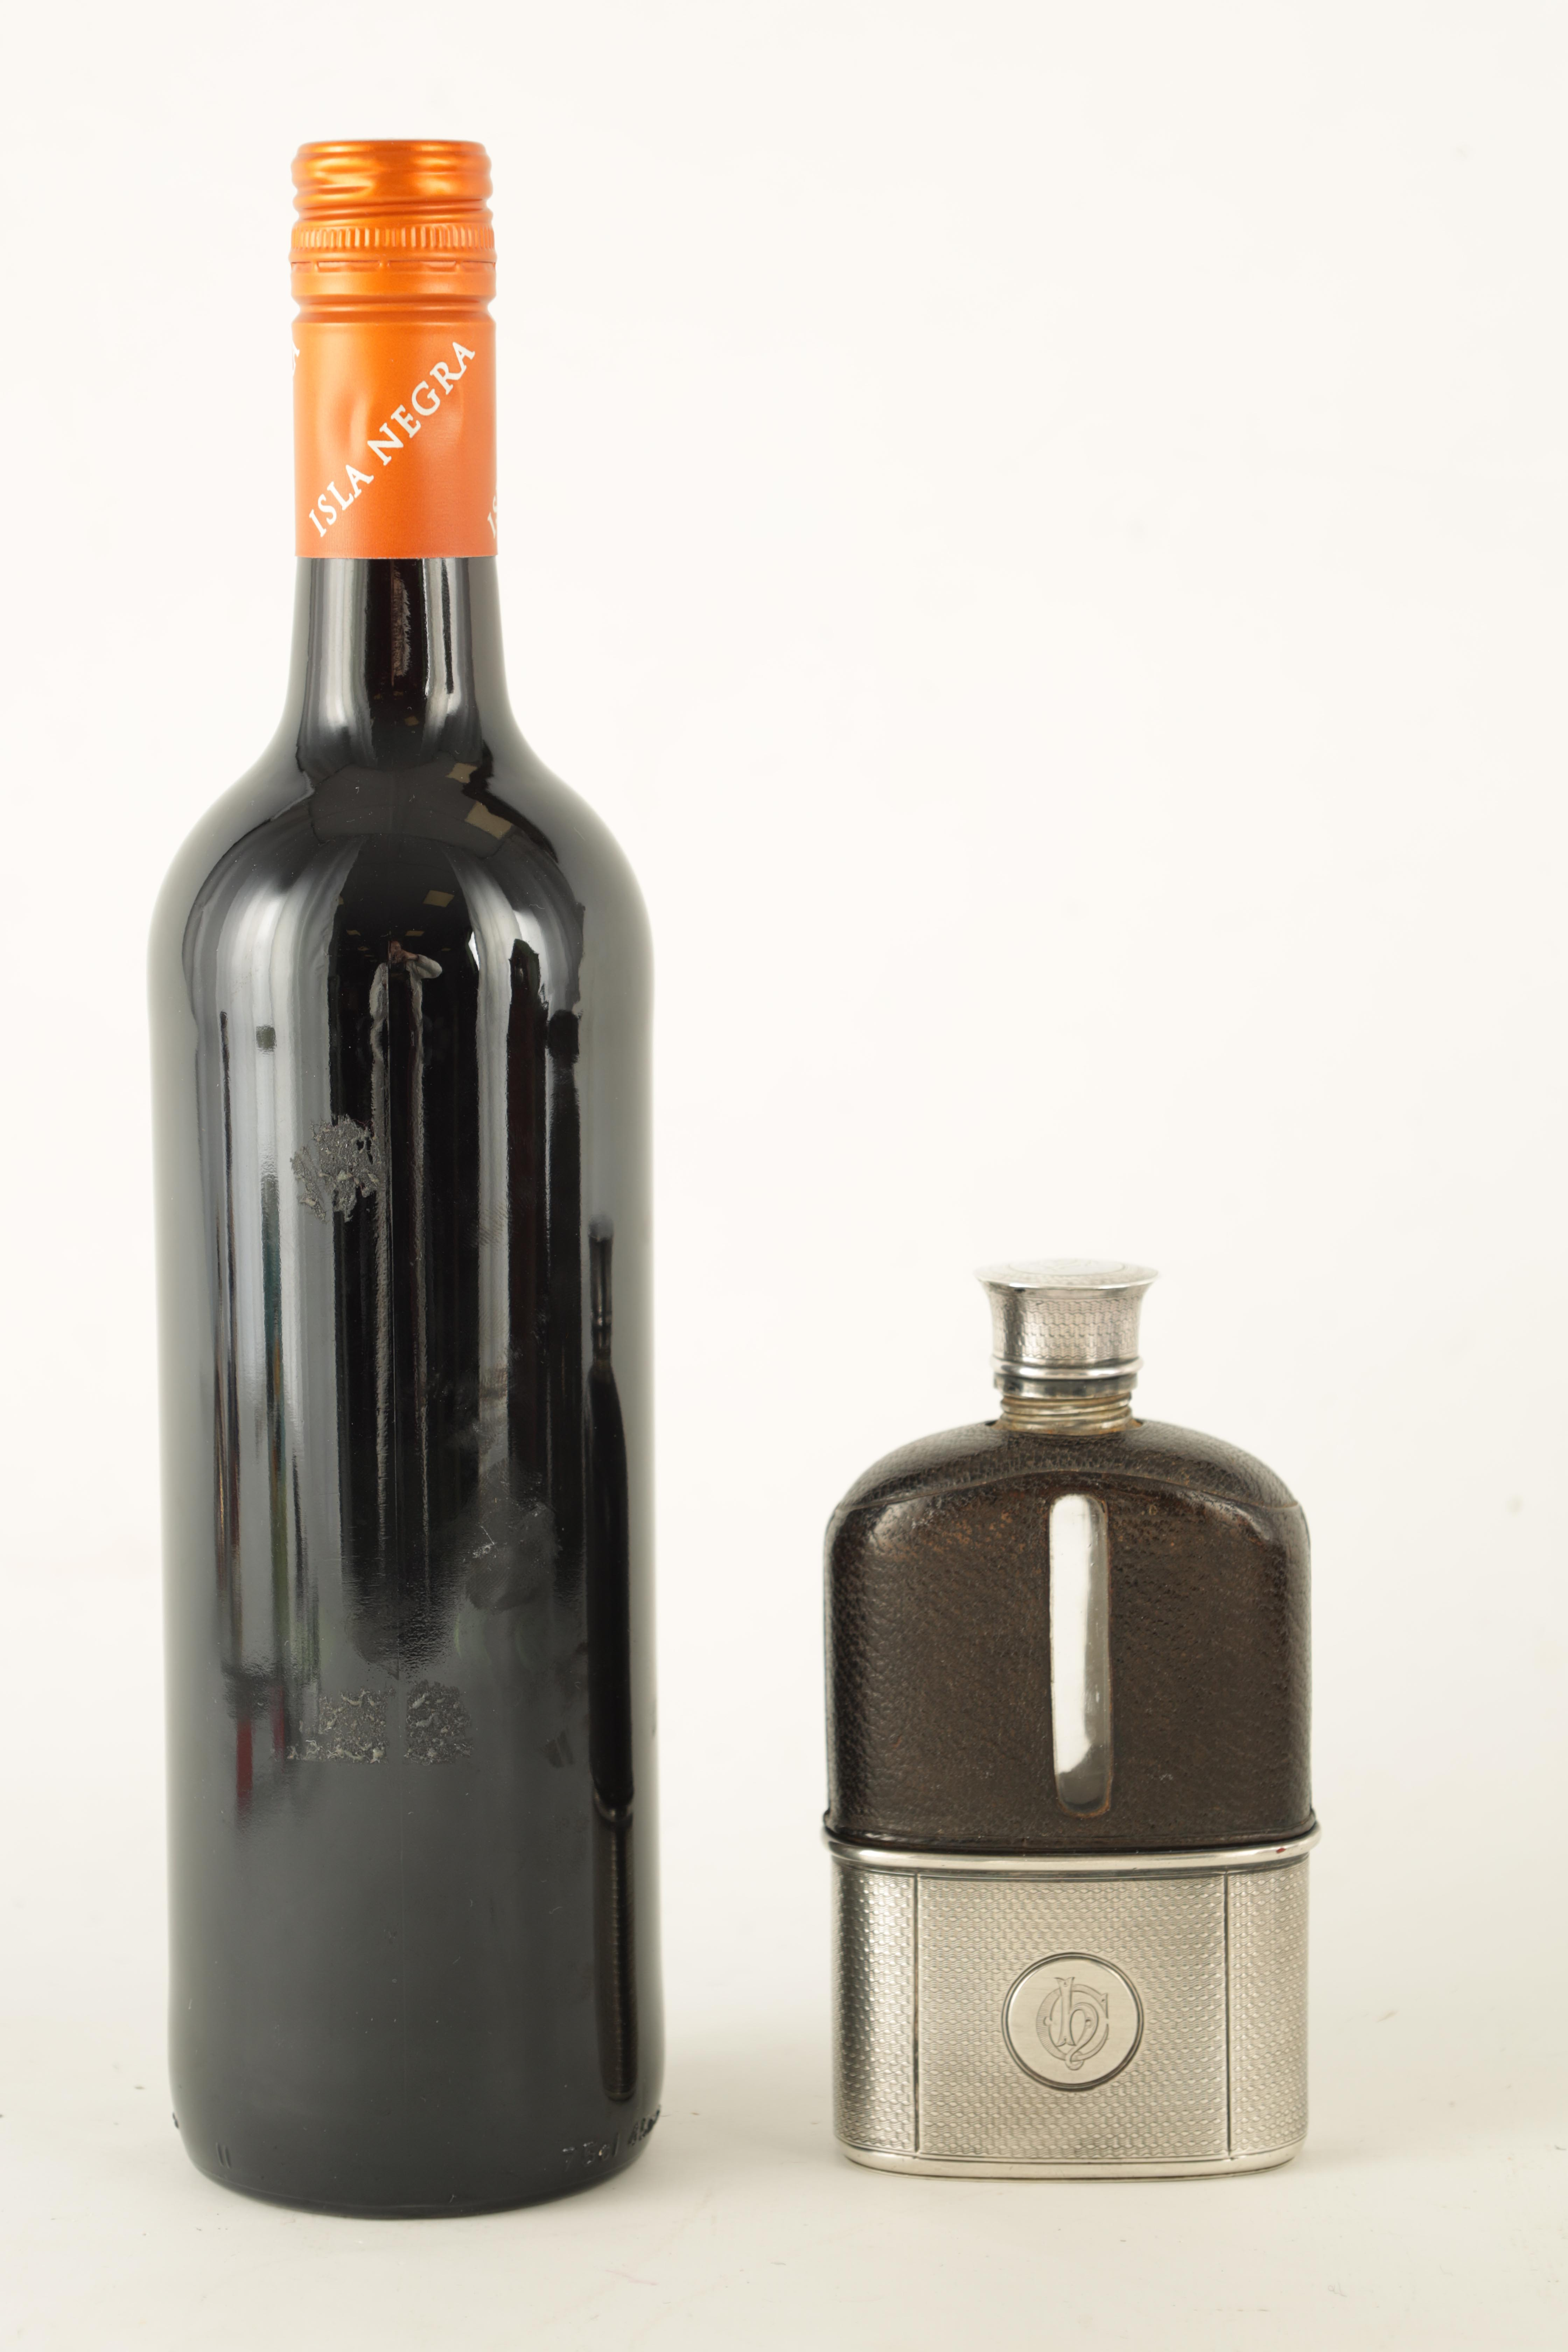 A VICTORIAN SILVER AND MOROCCAN LEATHER HIP FLASK RETAILED BY ASPREY 186 BOND STREET with engine- - Image 2 of 8